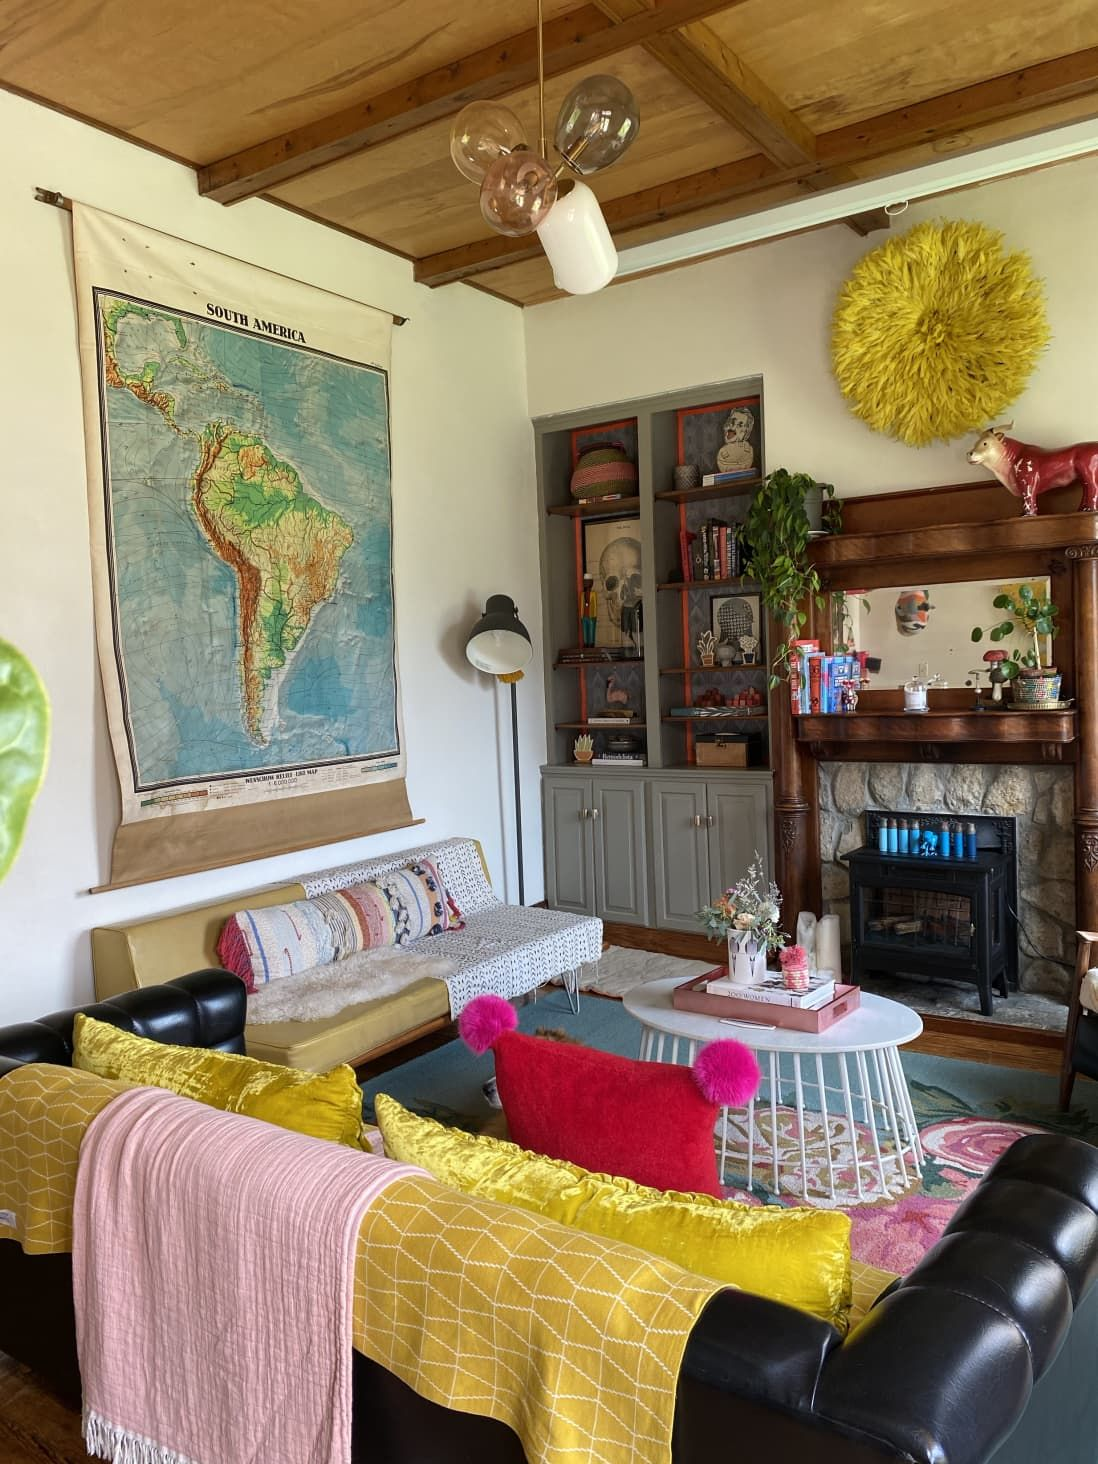 Every Room In This 115 Year Old House Has Been Transformed With Colorful Diy Paint Boho Living Room Colorful Diy Diy Wall Painting